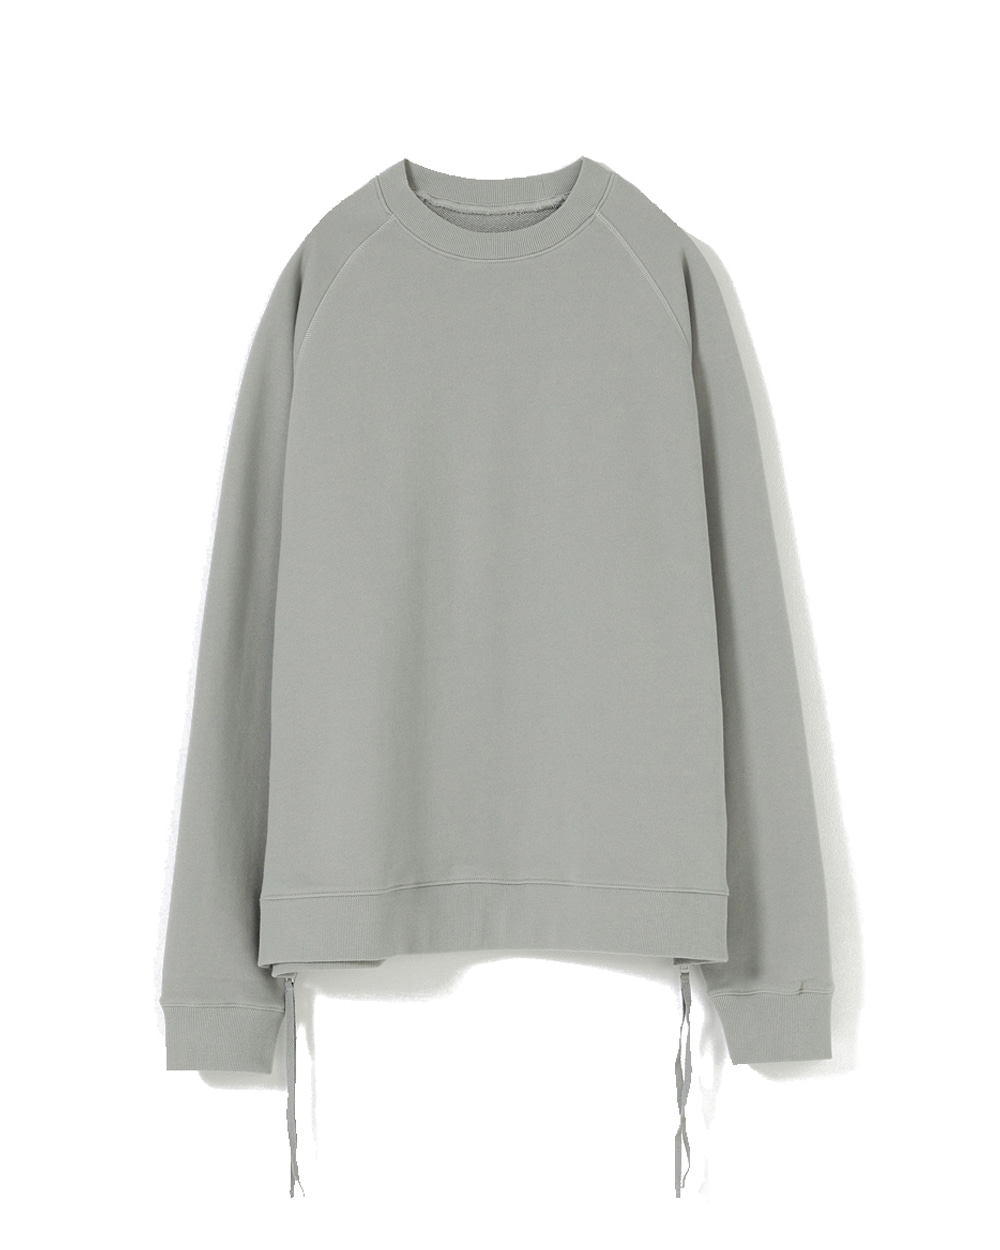 유스 Side Zip-up Sweatshirt (Mint grey)